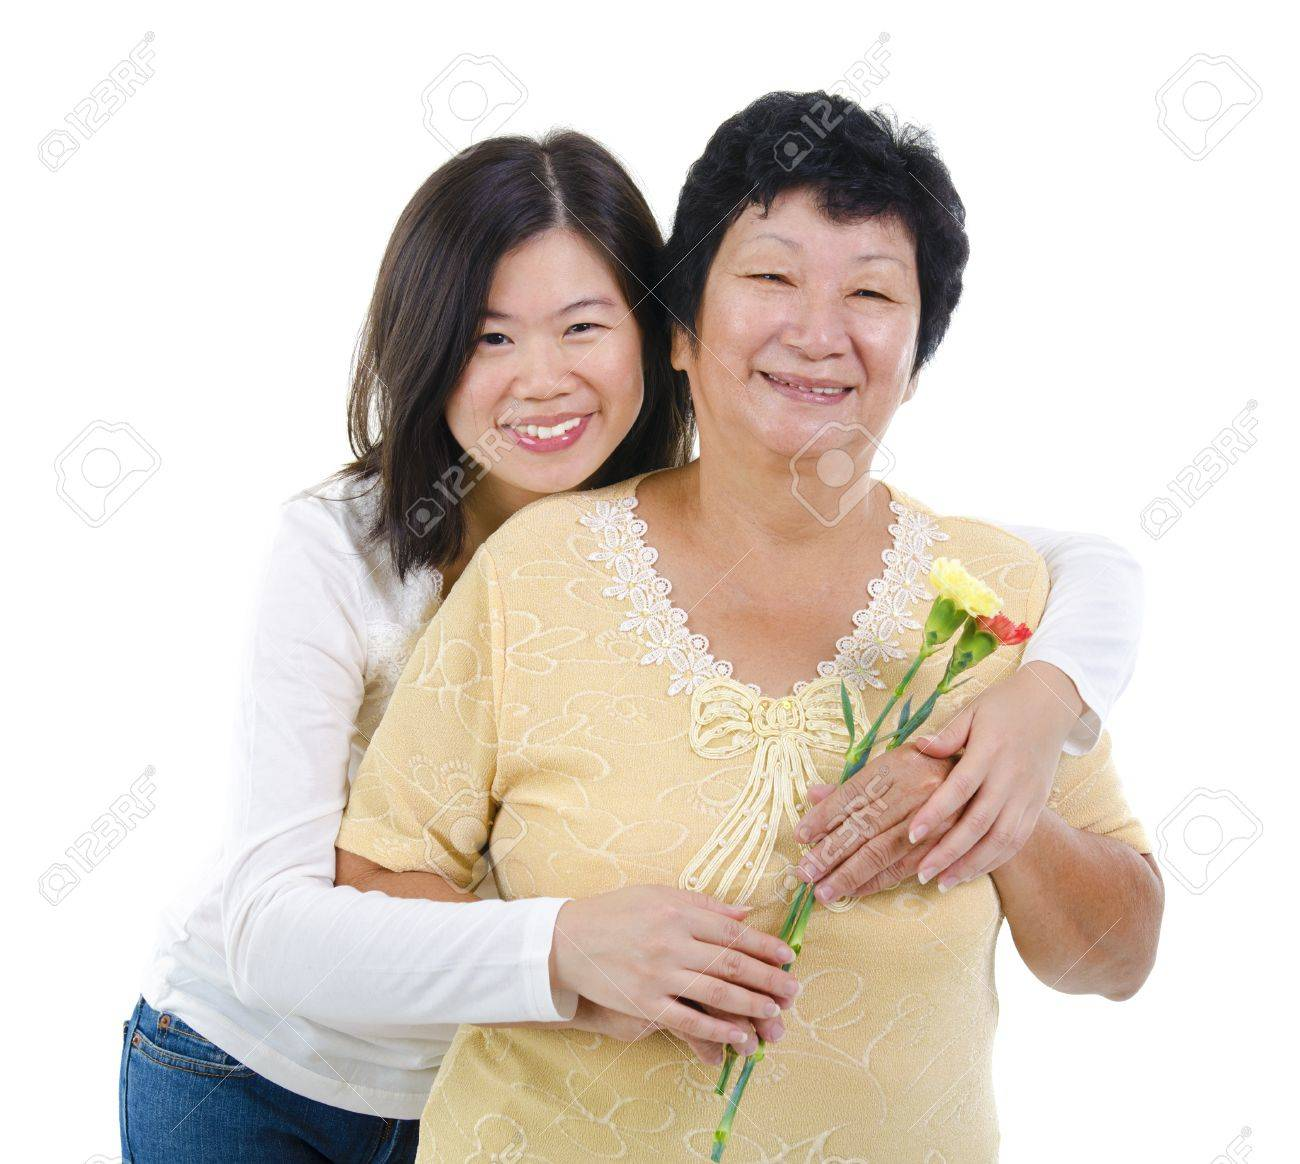 Daughter giving carnation flowers to her mother over white background Stock Photo - 14917211